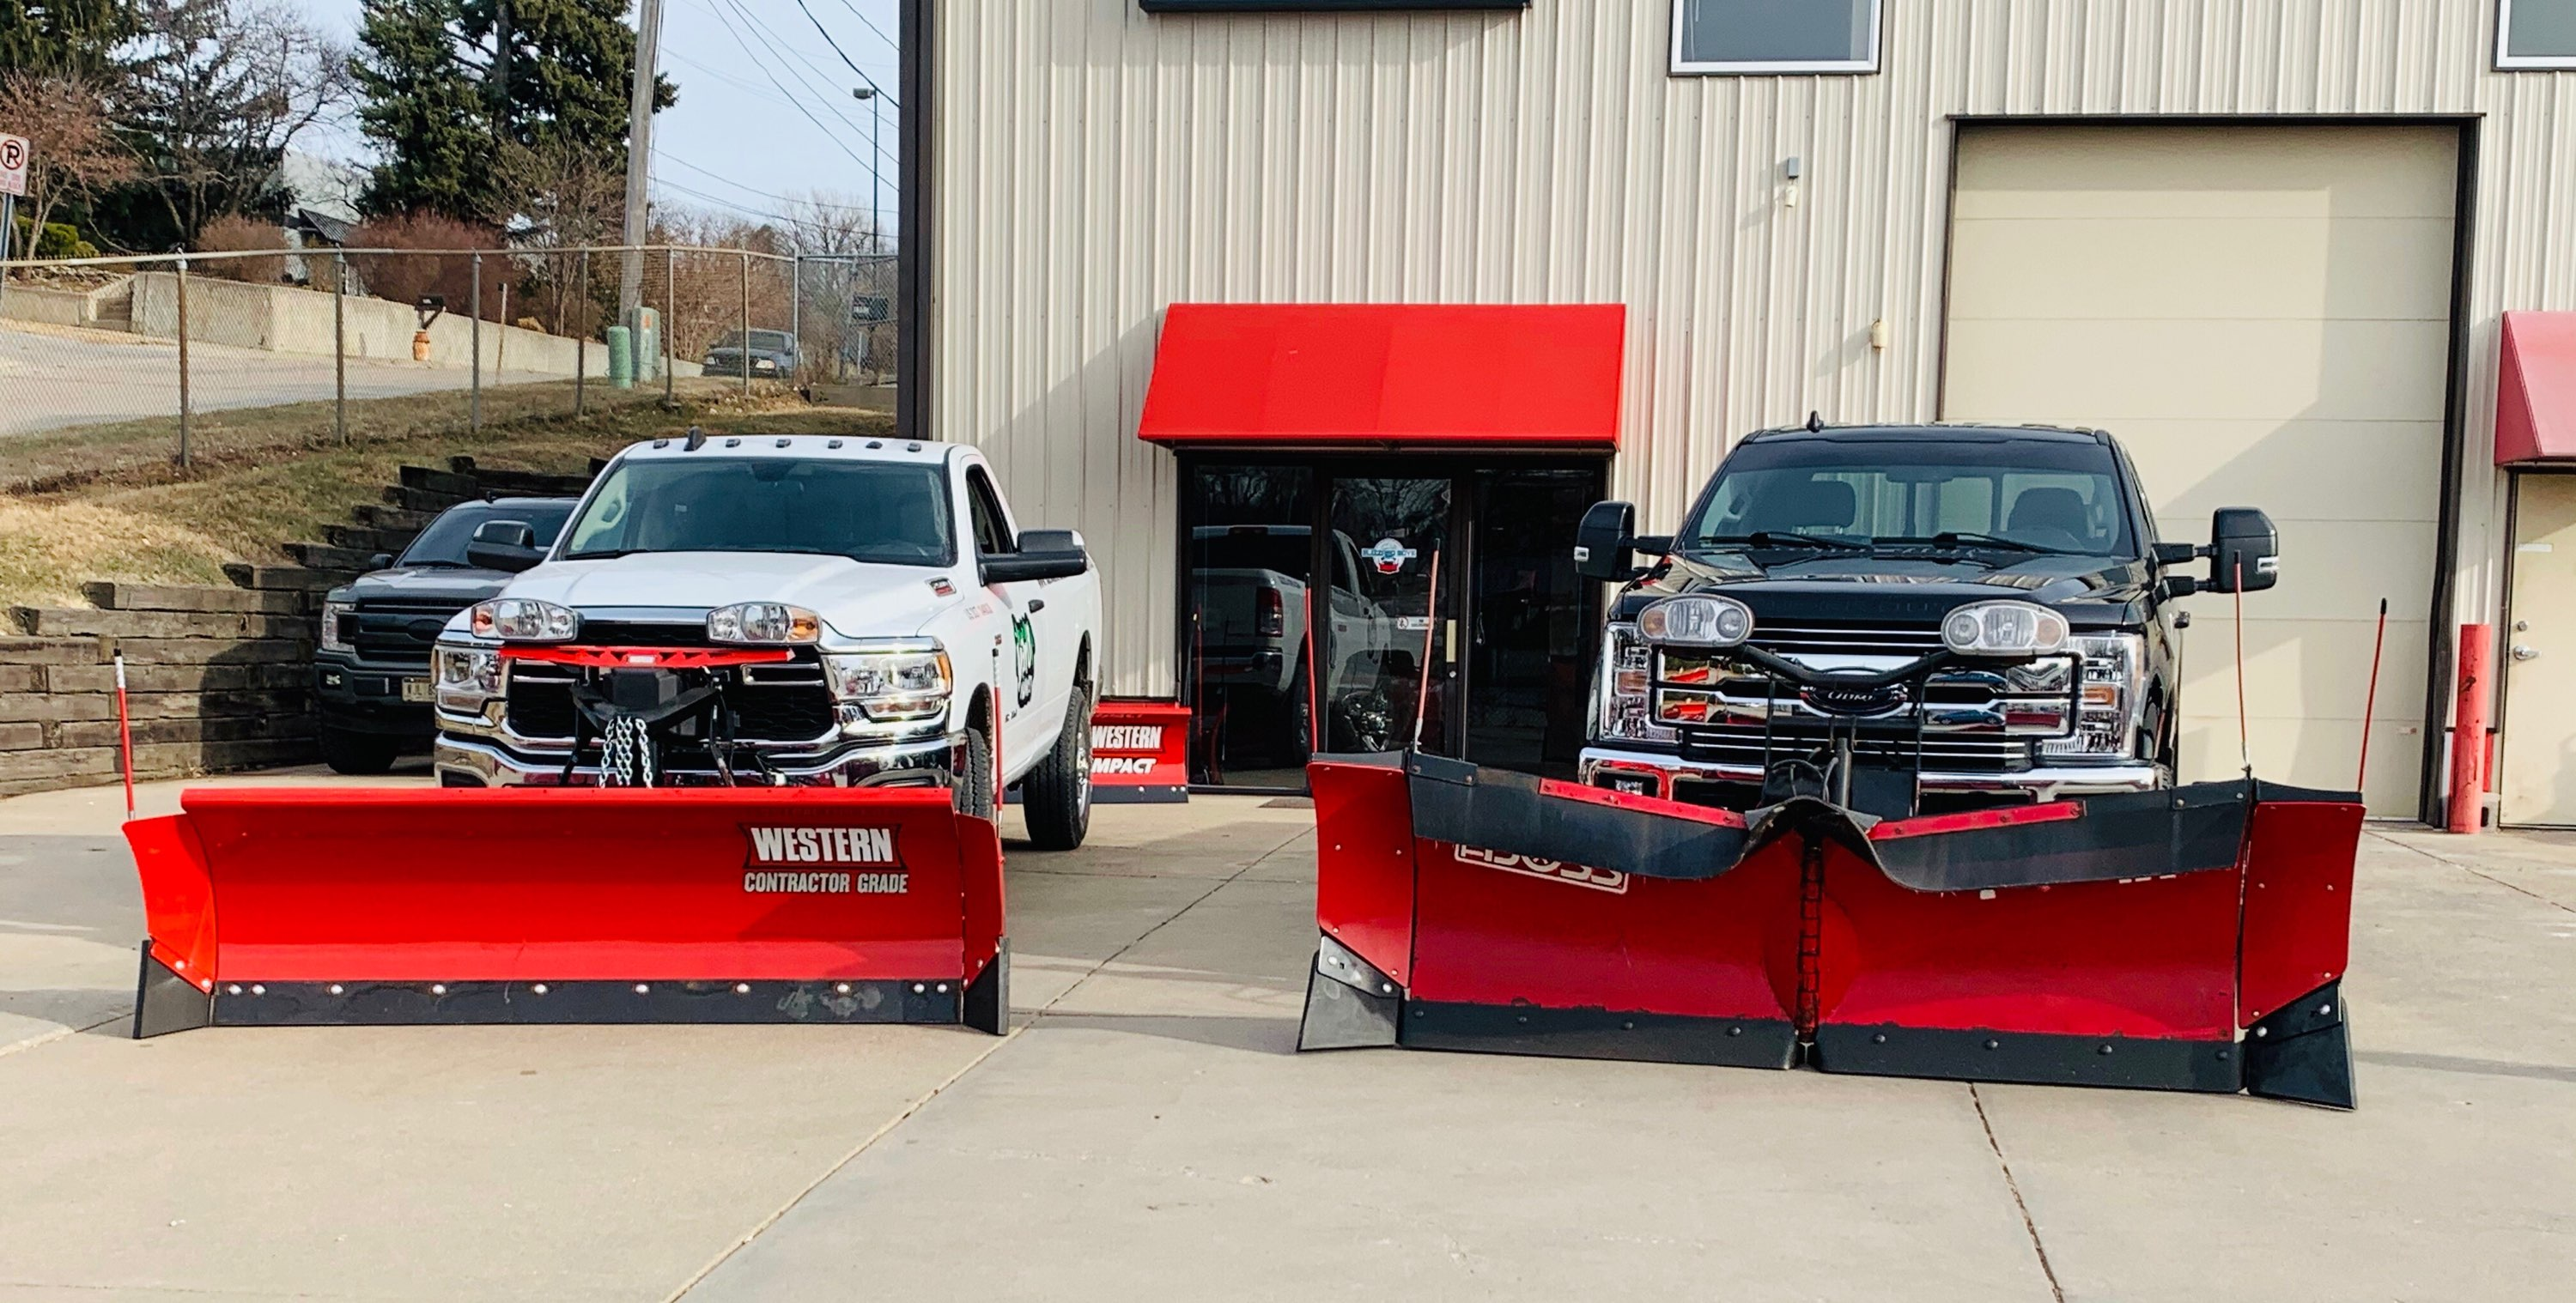 Blizzard Boys Truck, Trailer, & Snow Removal Equipment